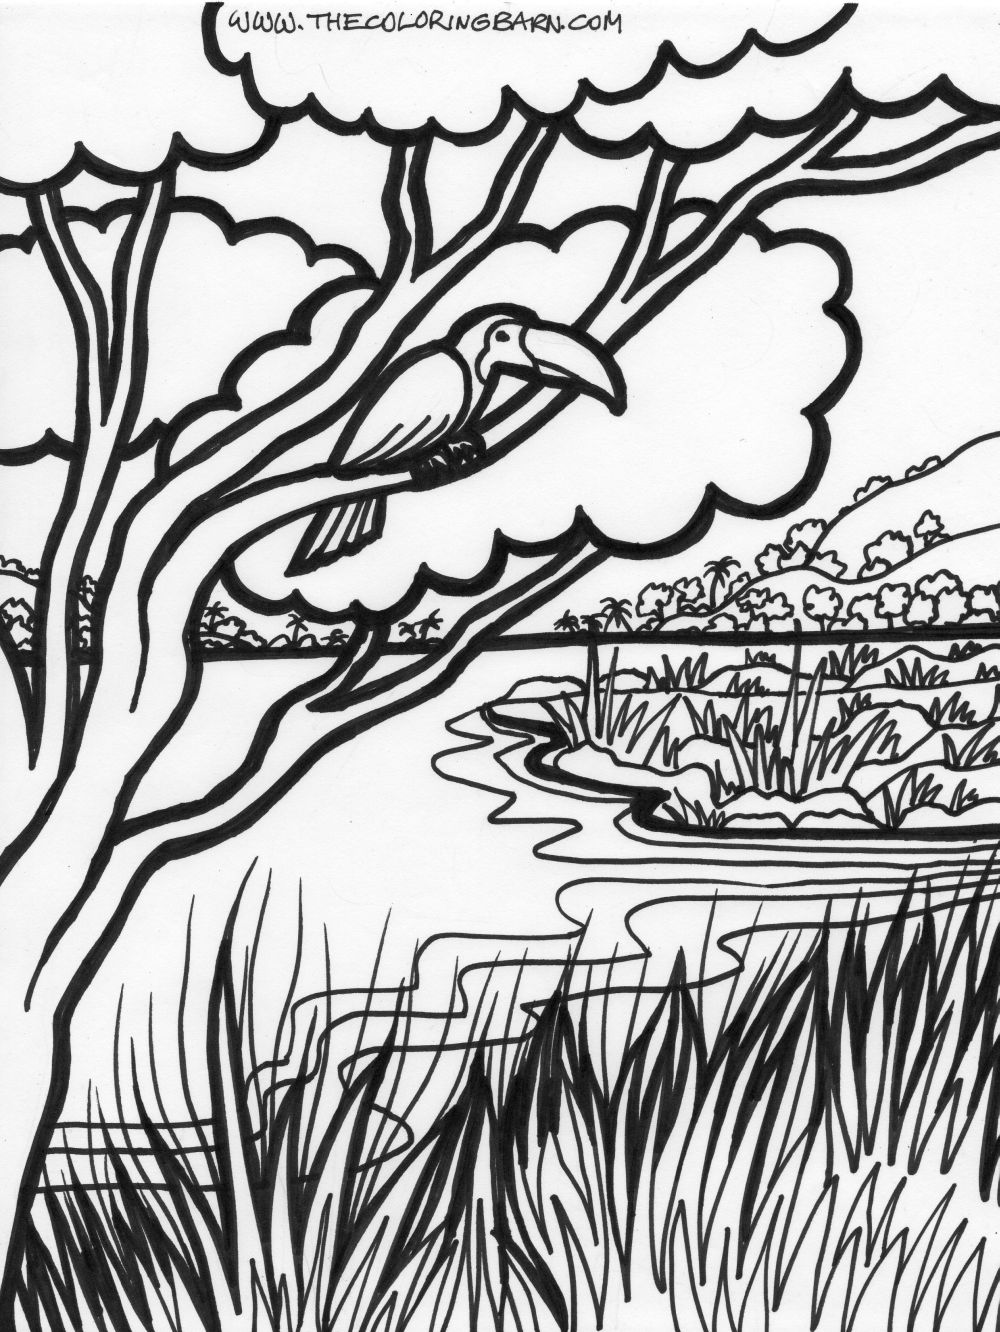 Coloring Pages Jungle Coloring Pages Printable jungle coloring pages 22 kids download 22